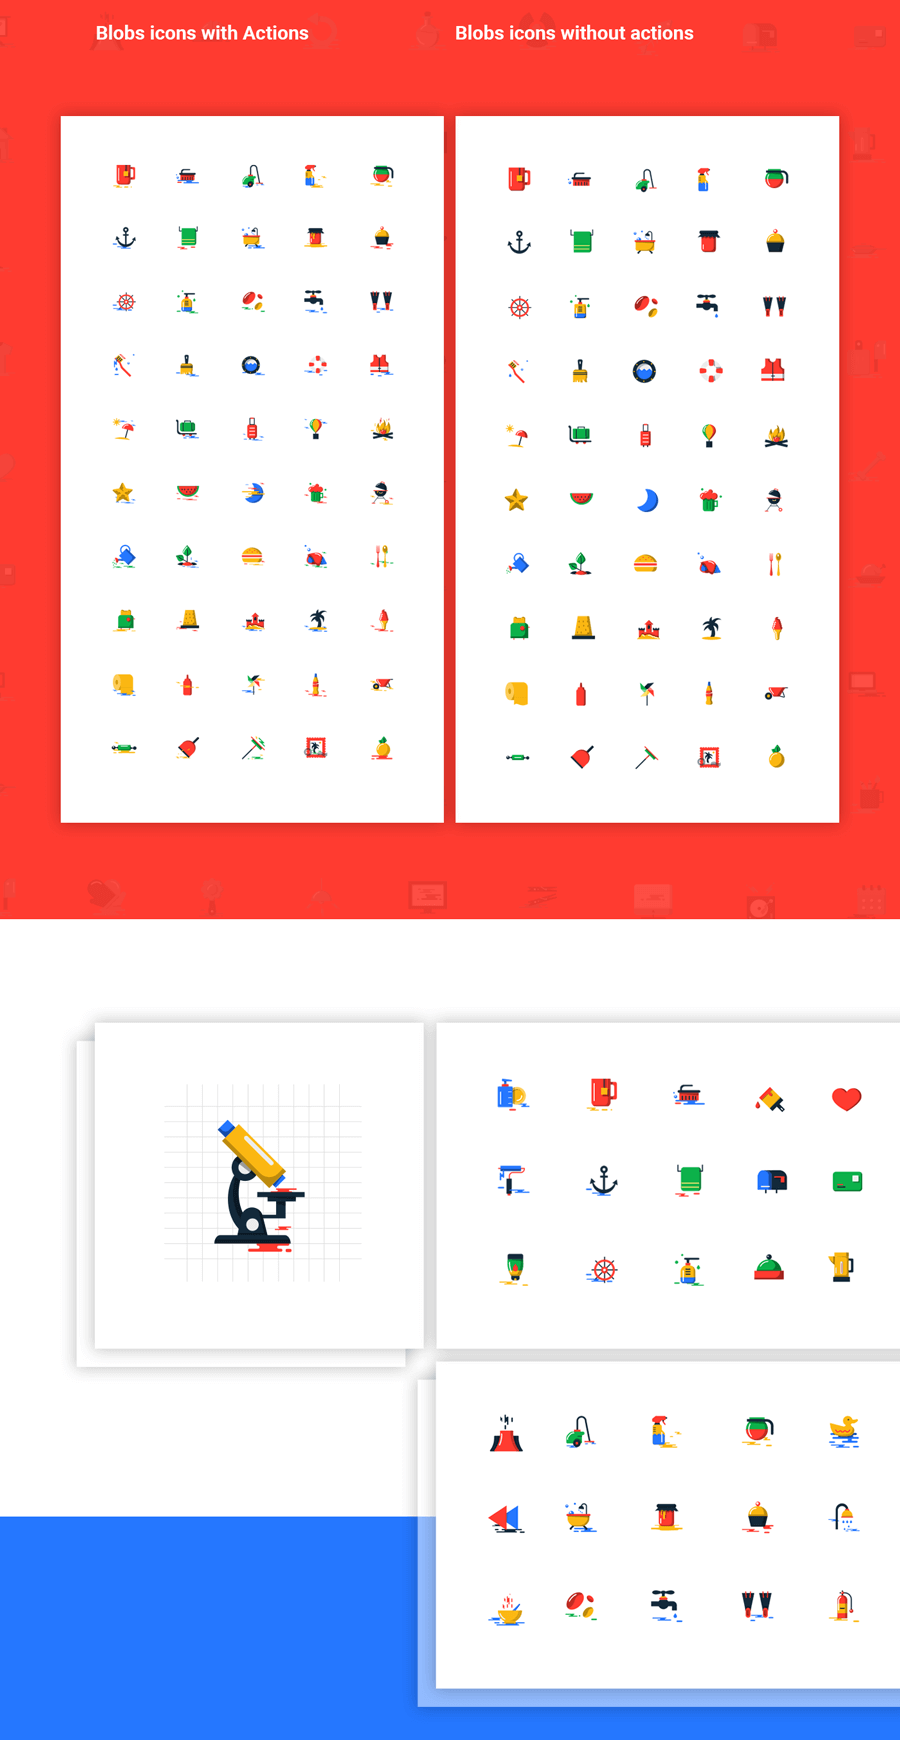 1000+ Blob Flat Icons In Two Styles3